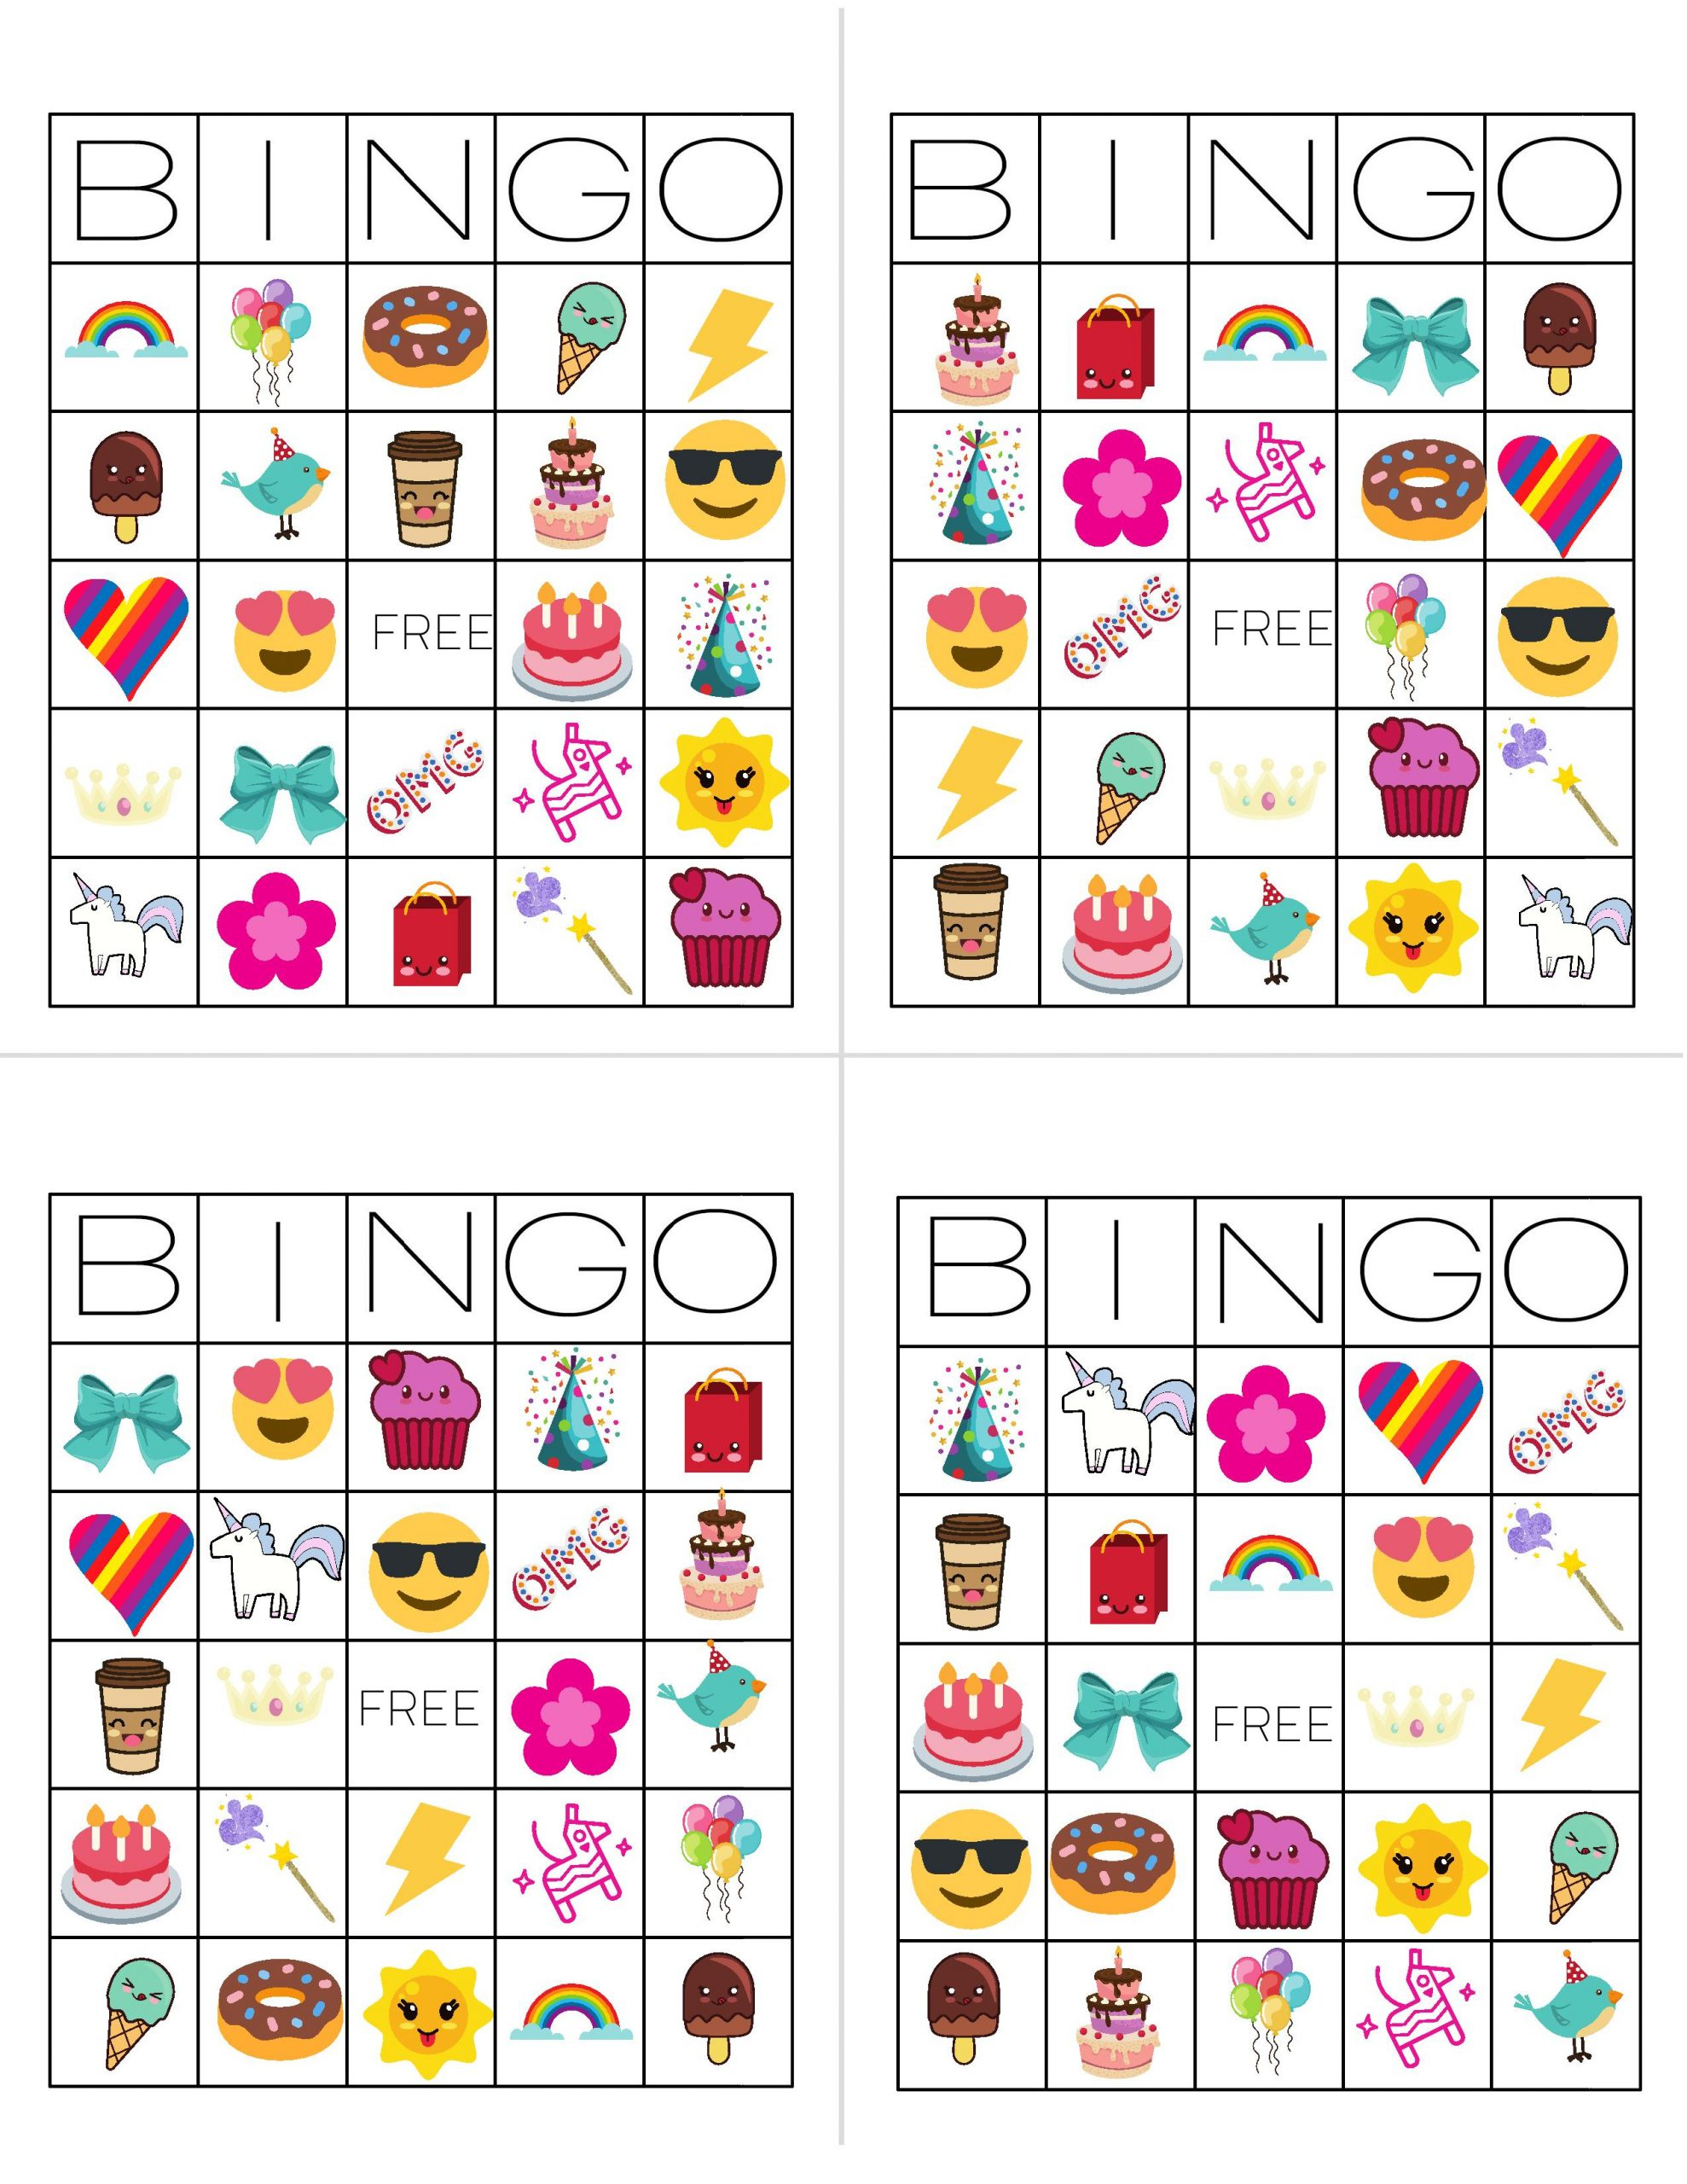 Unicorn Bingo Free Printable Download - Tinselbox